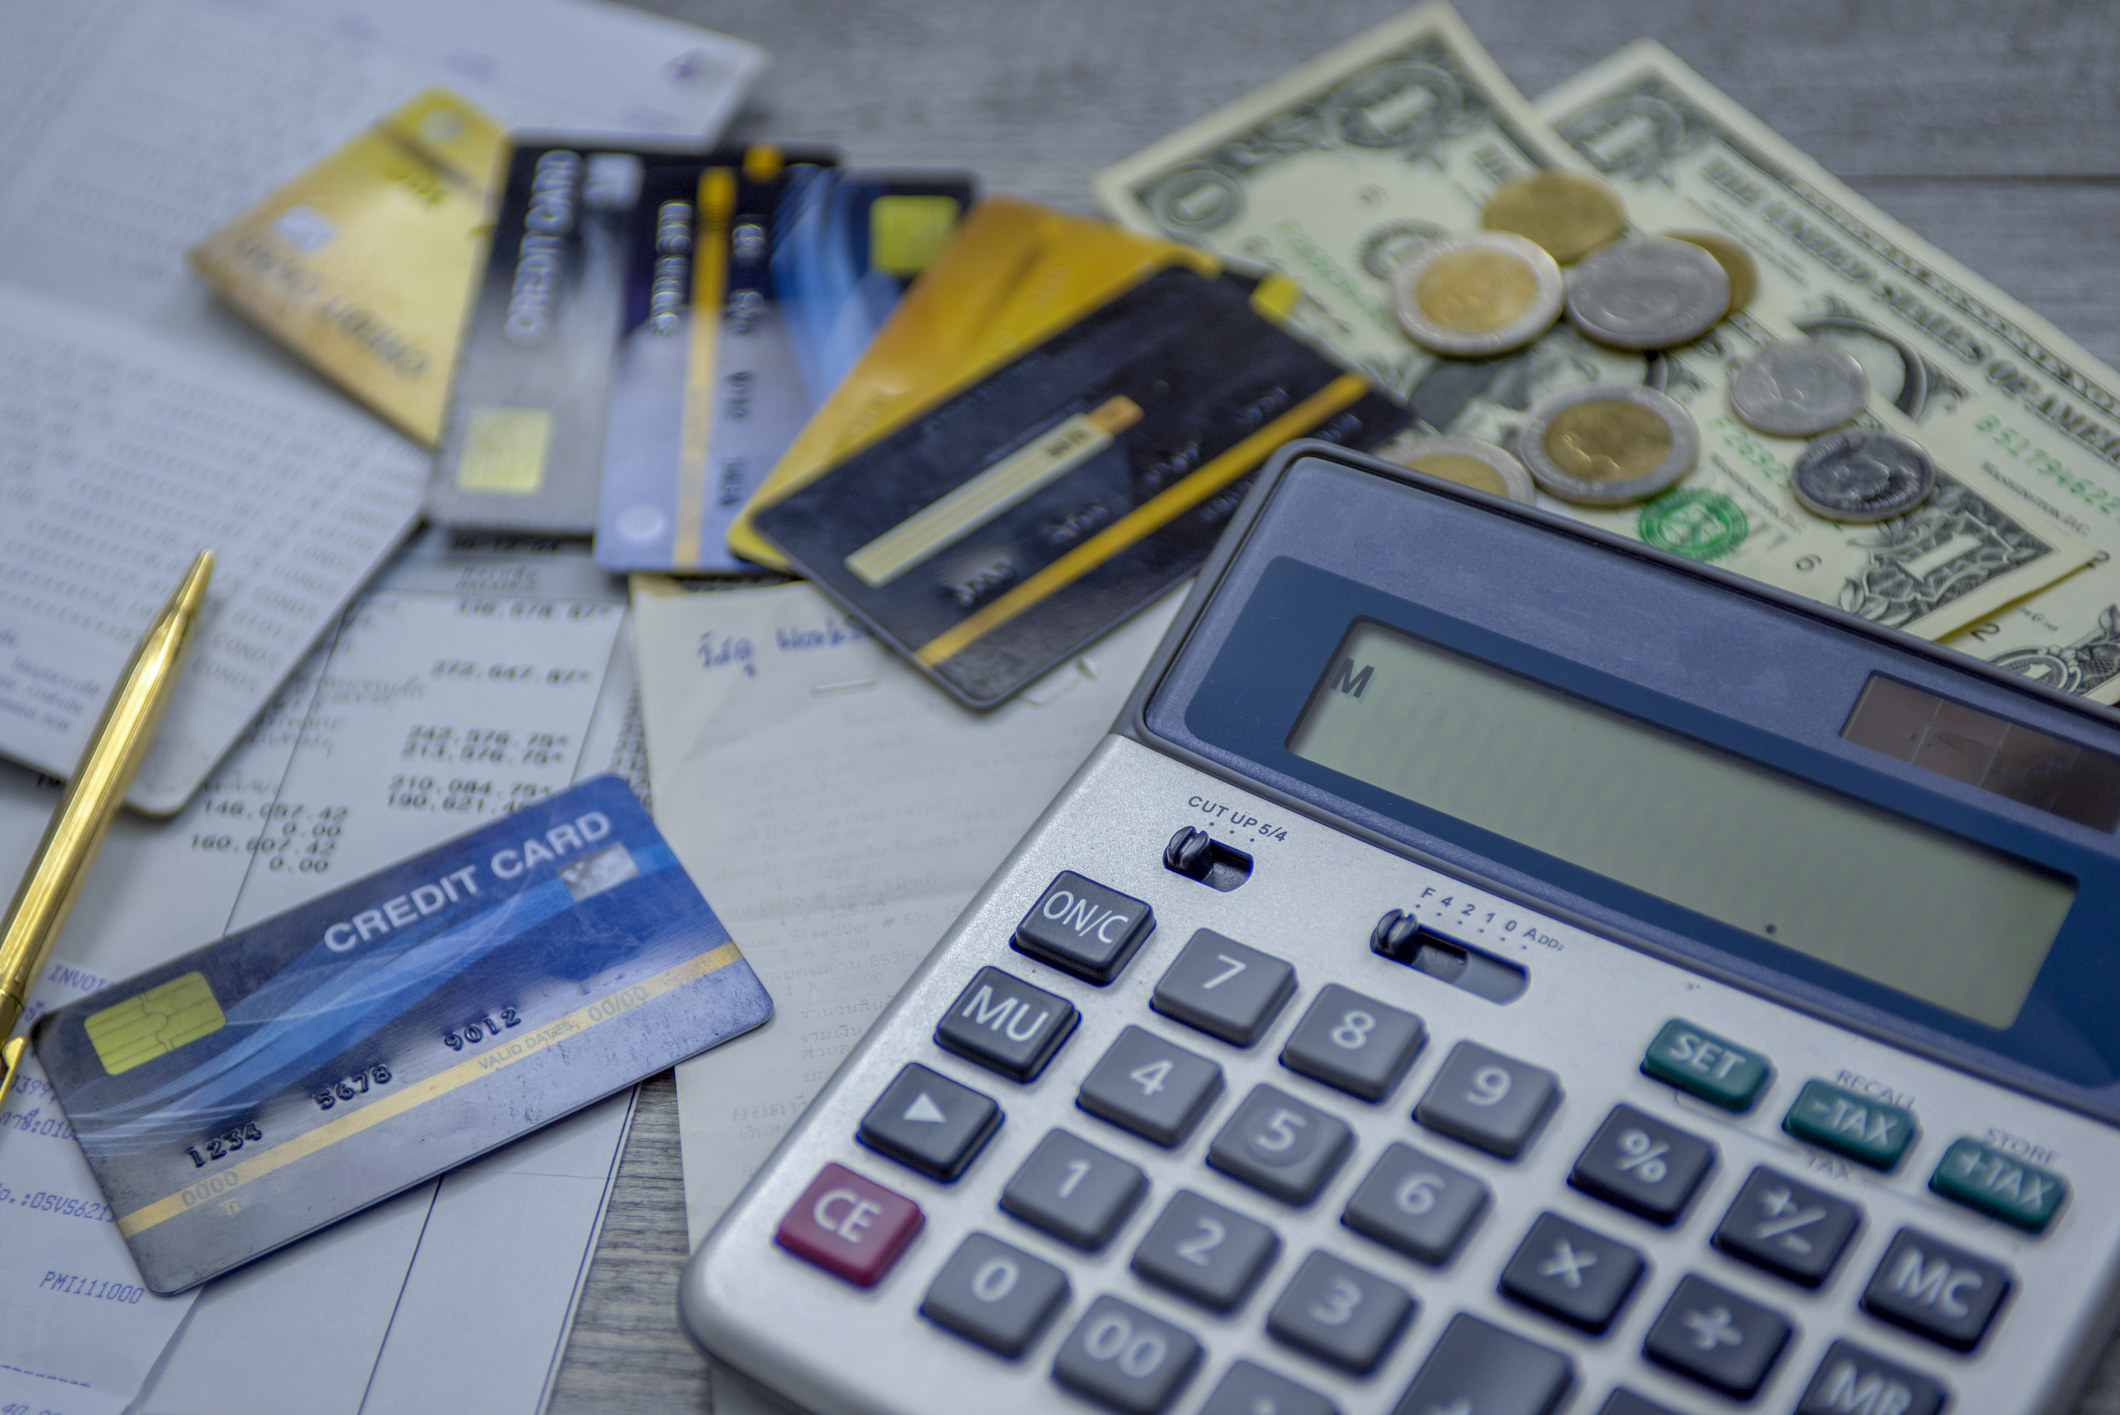 A calculator among credit cards, money, and lots of bills